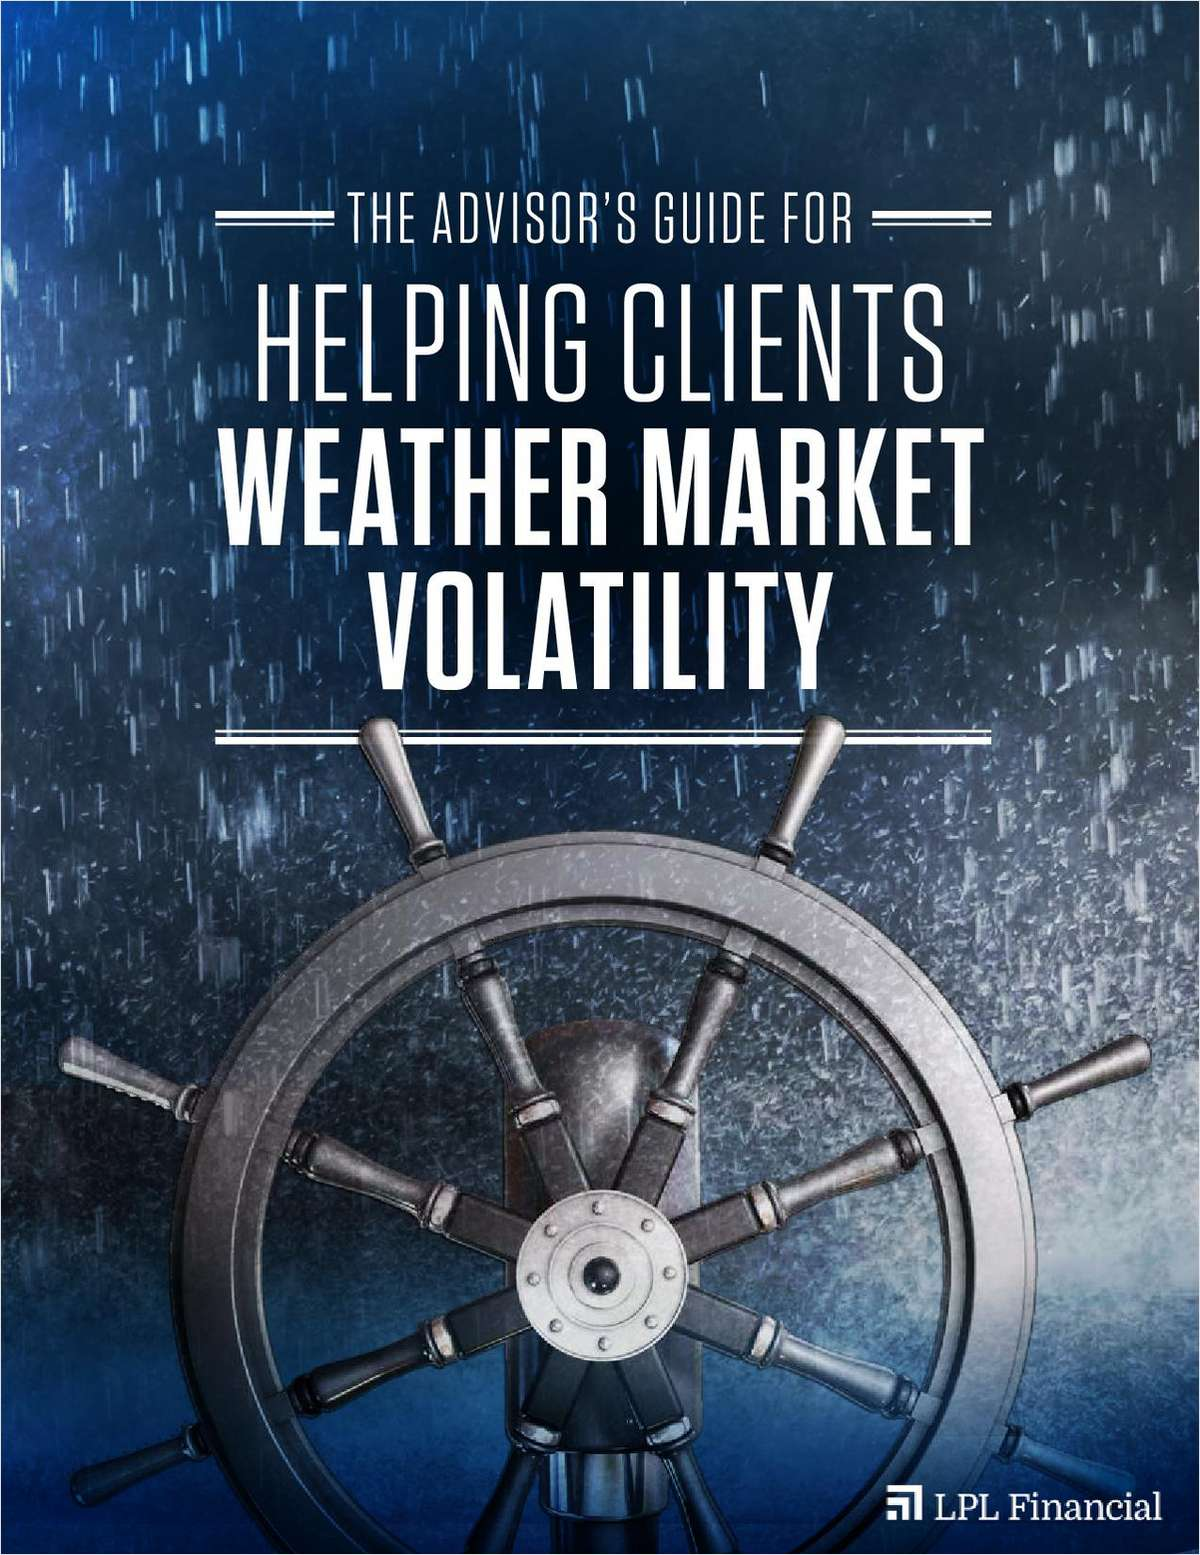 The Advisor's Guide for Helping Clients Weather Market Volatility